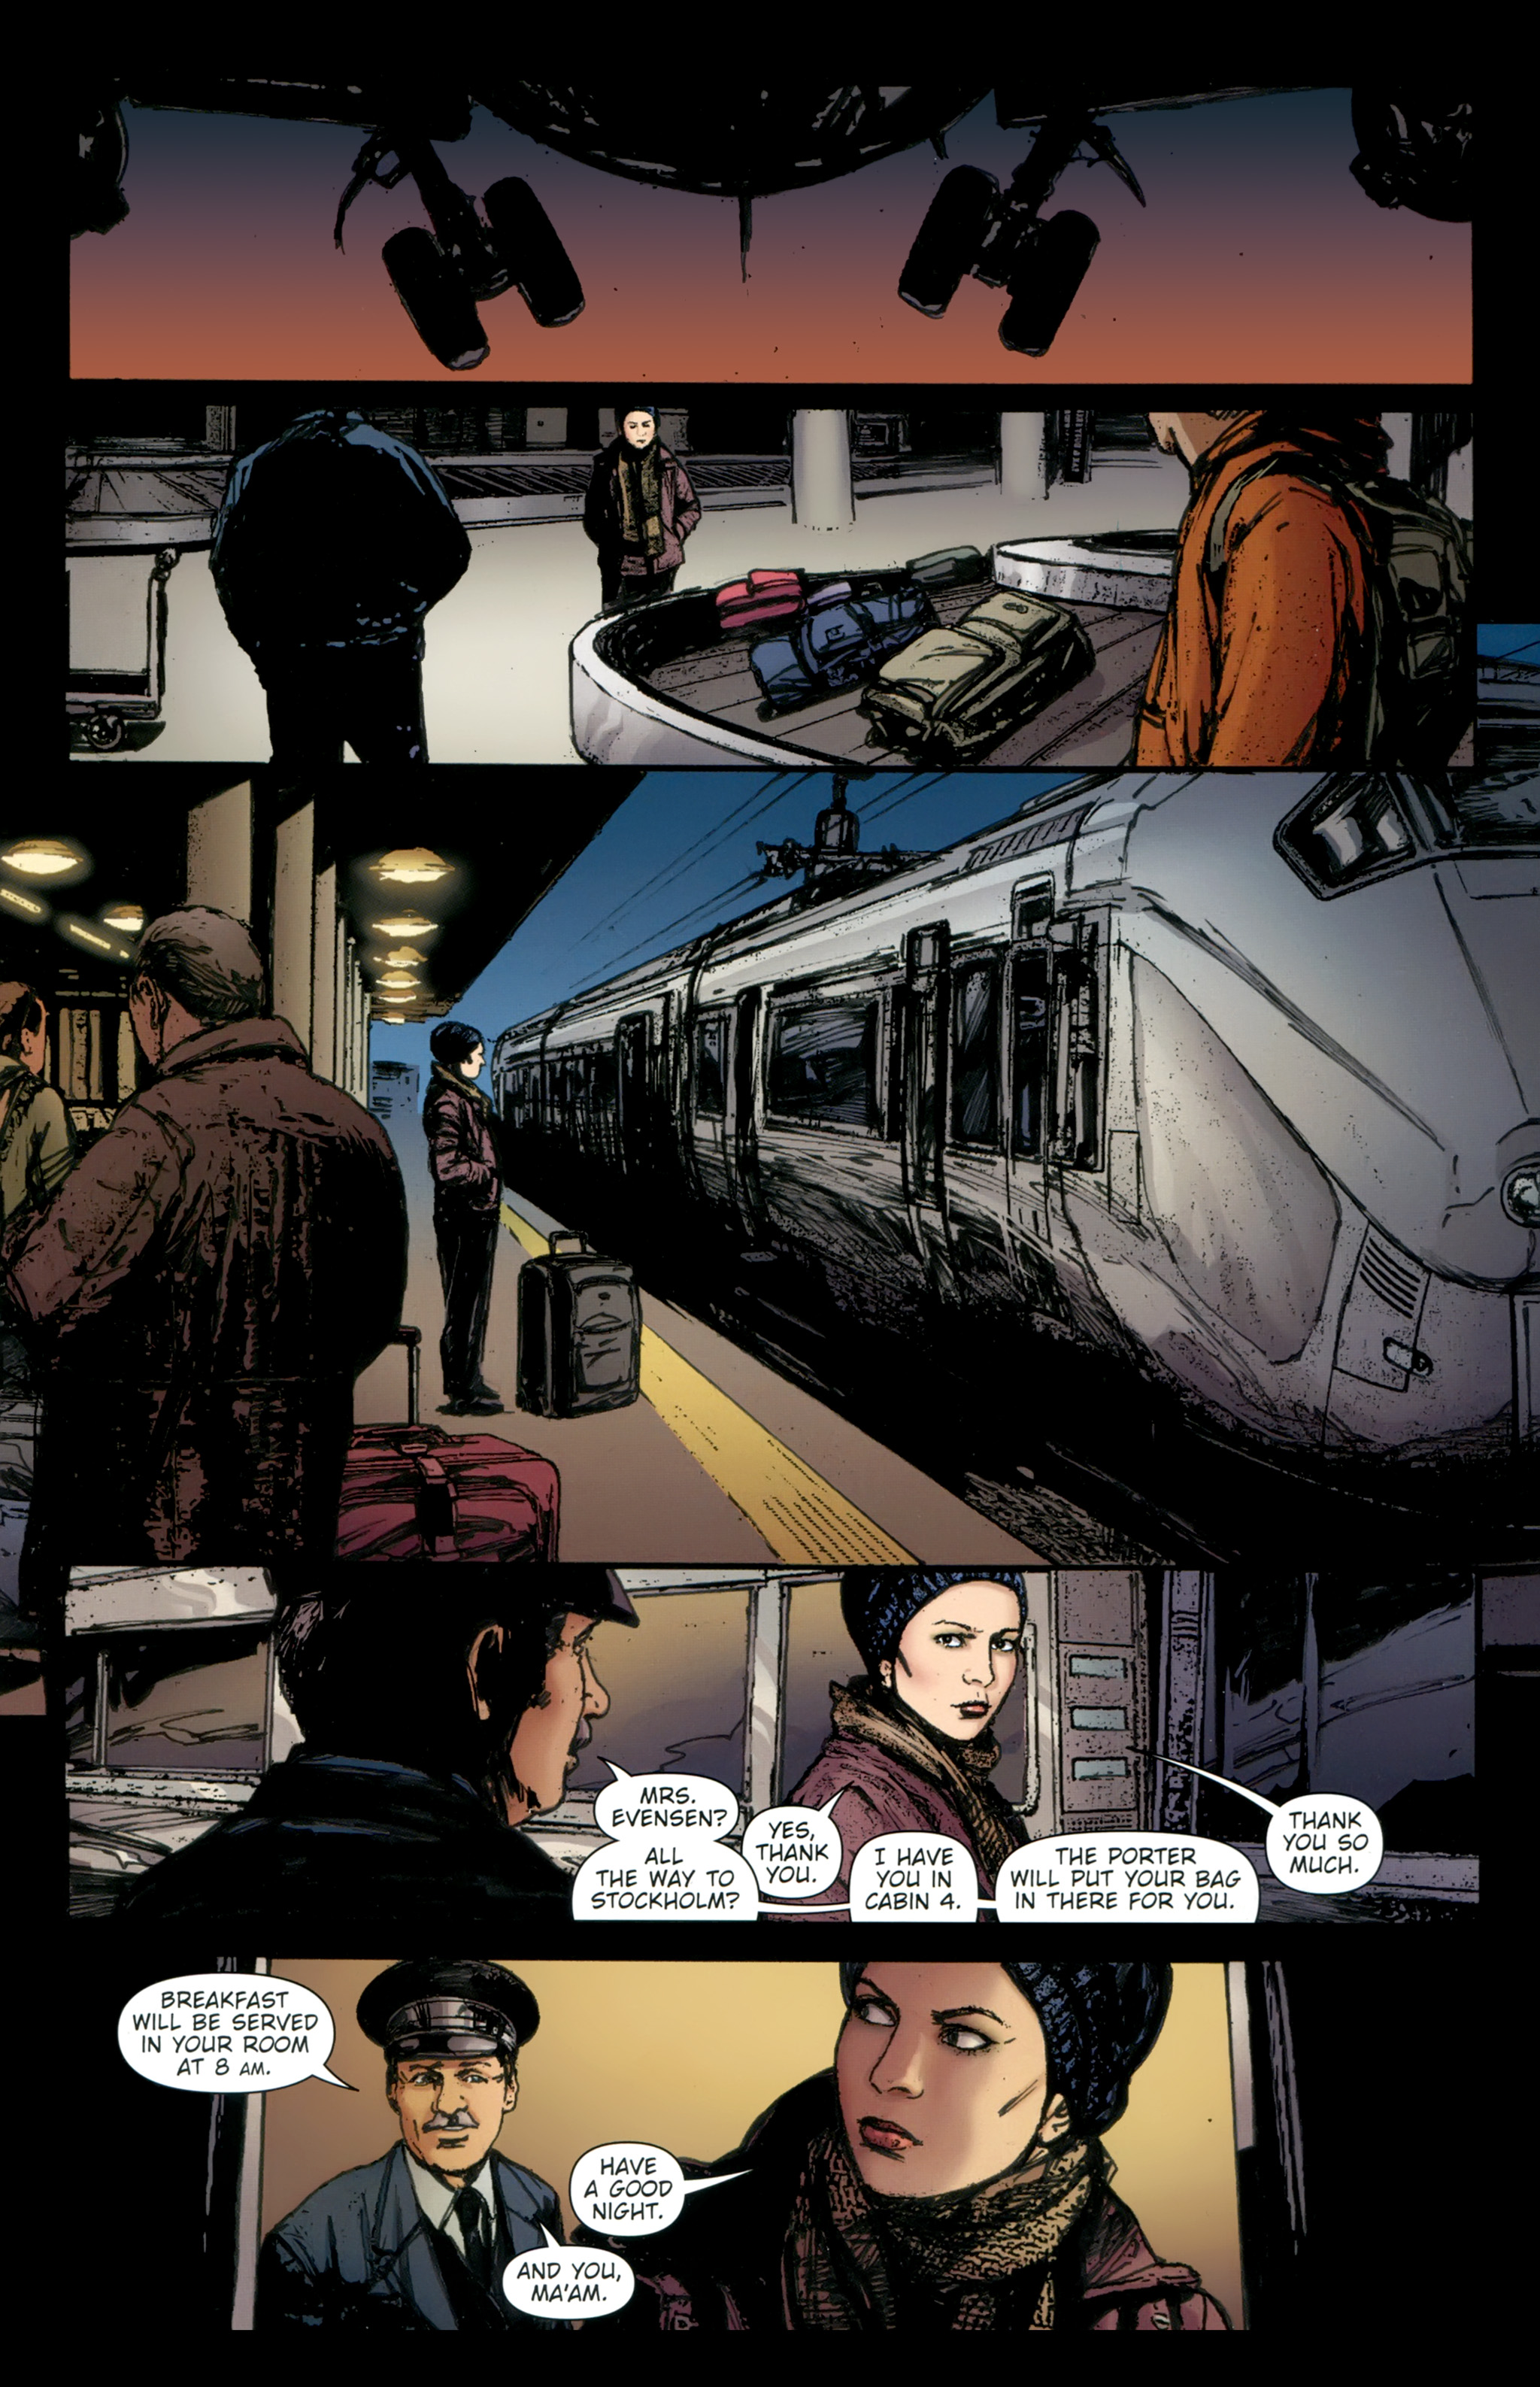 Read online The Girl With the Dragon Tattoo comic -  Issue # TPB 2 - 151